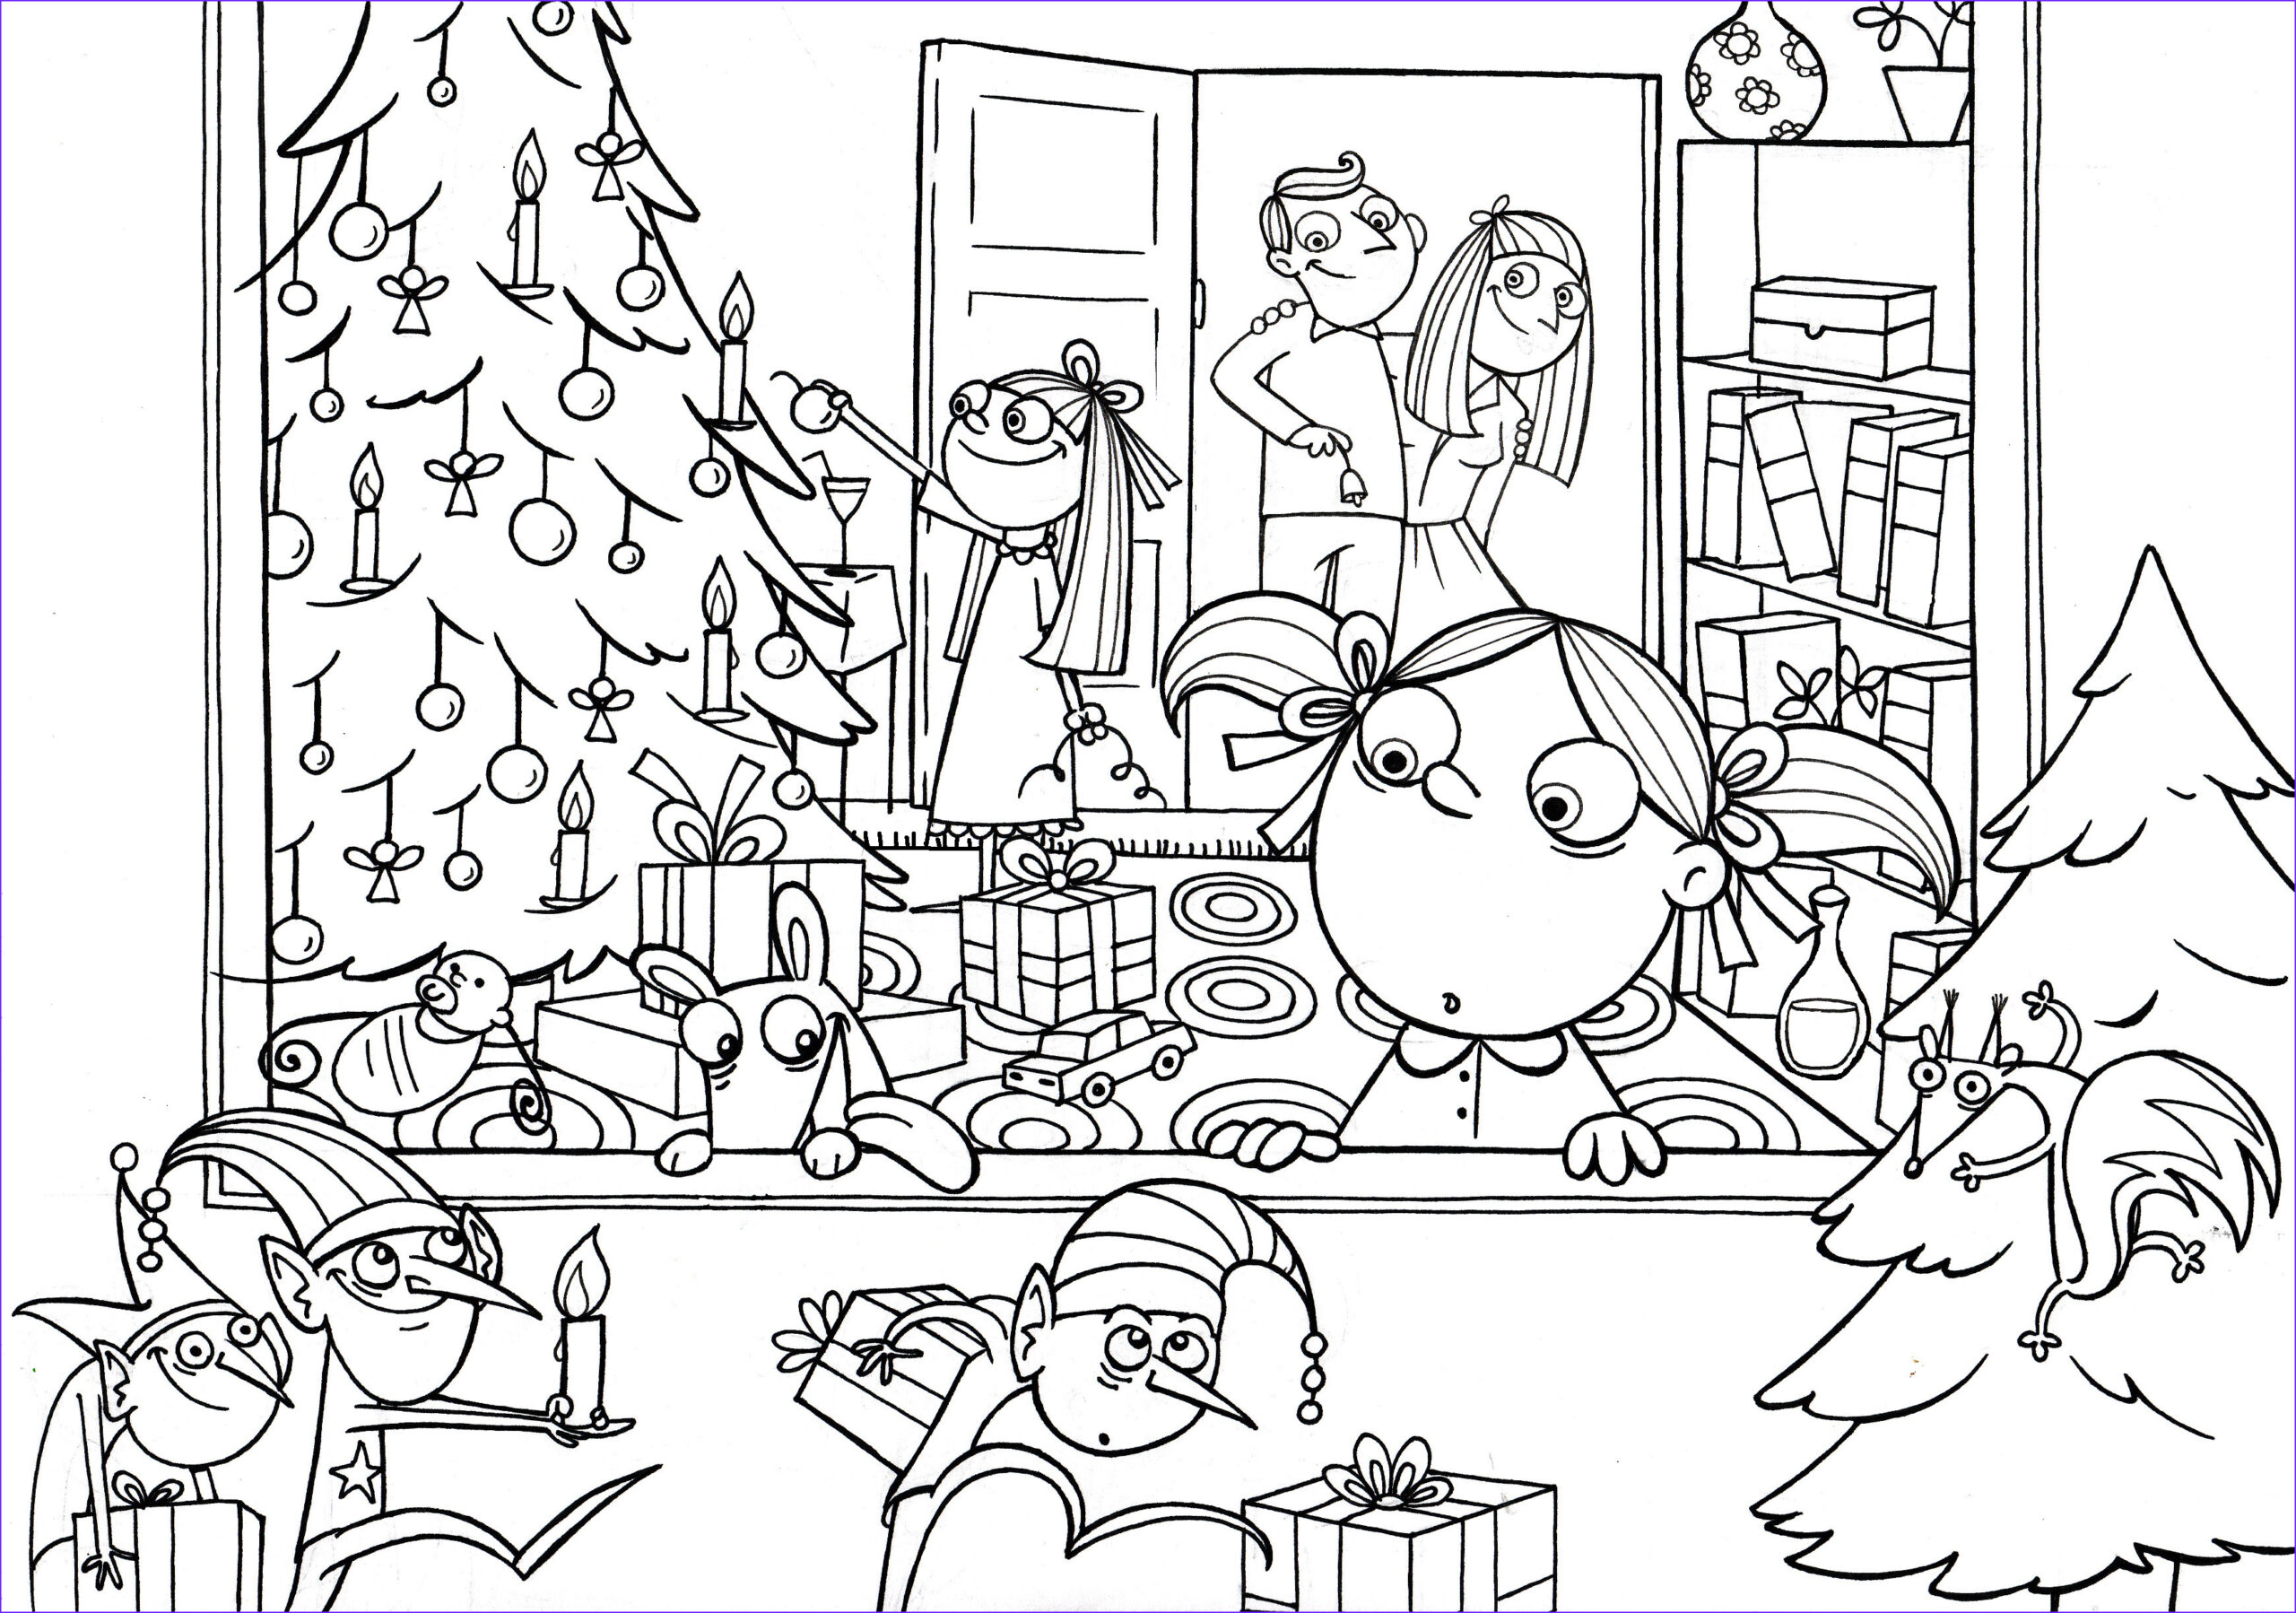 Holiday Coloring Book Awesome Photos Free Coloring Pages by Monika Vas